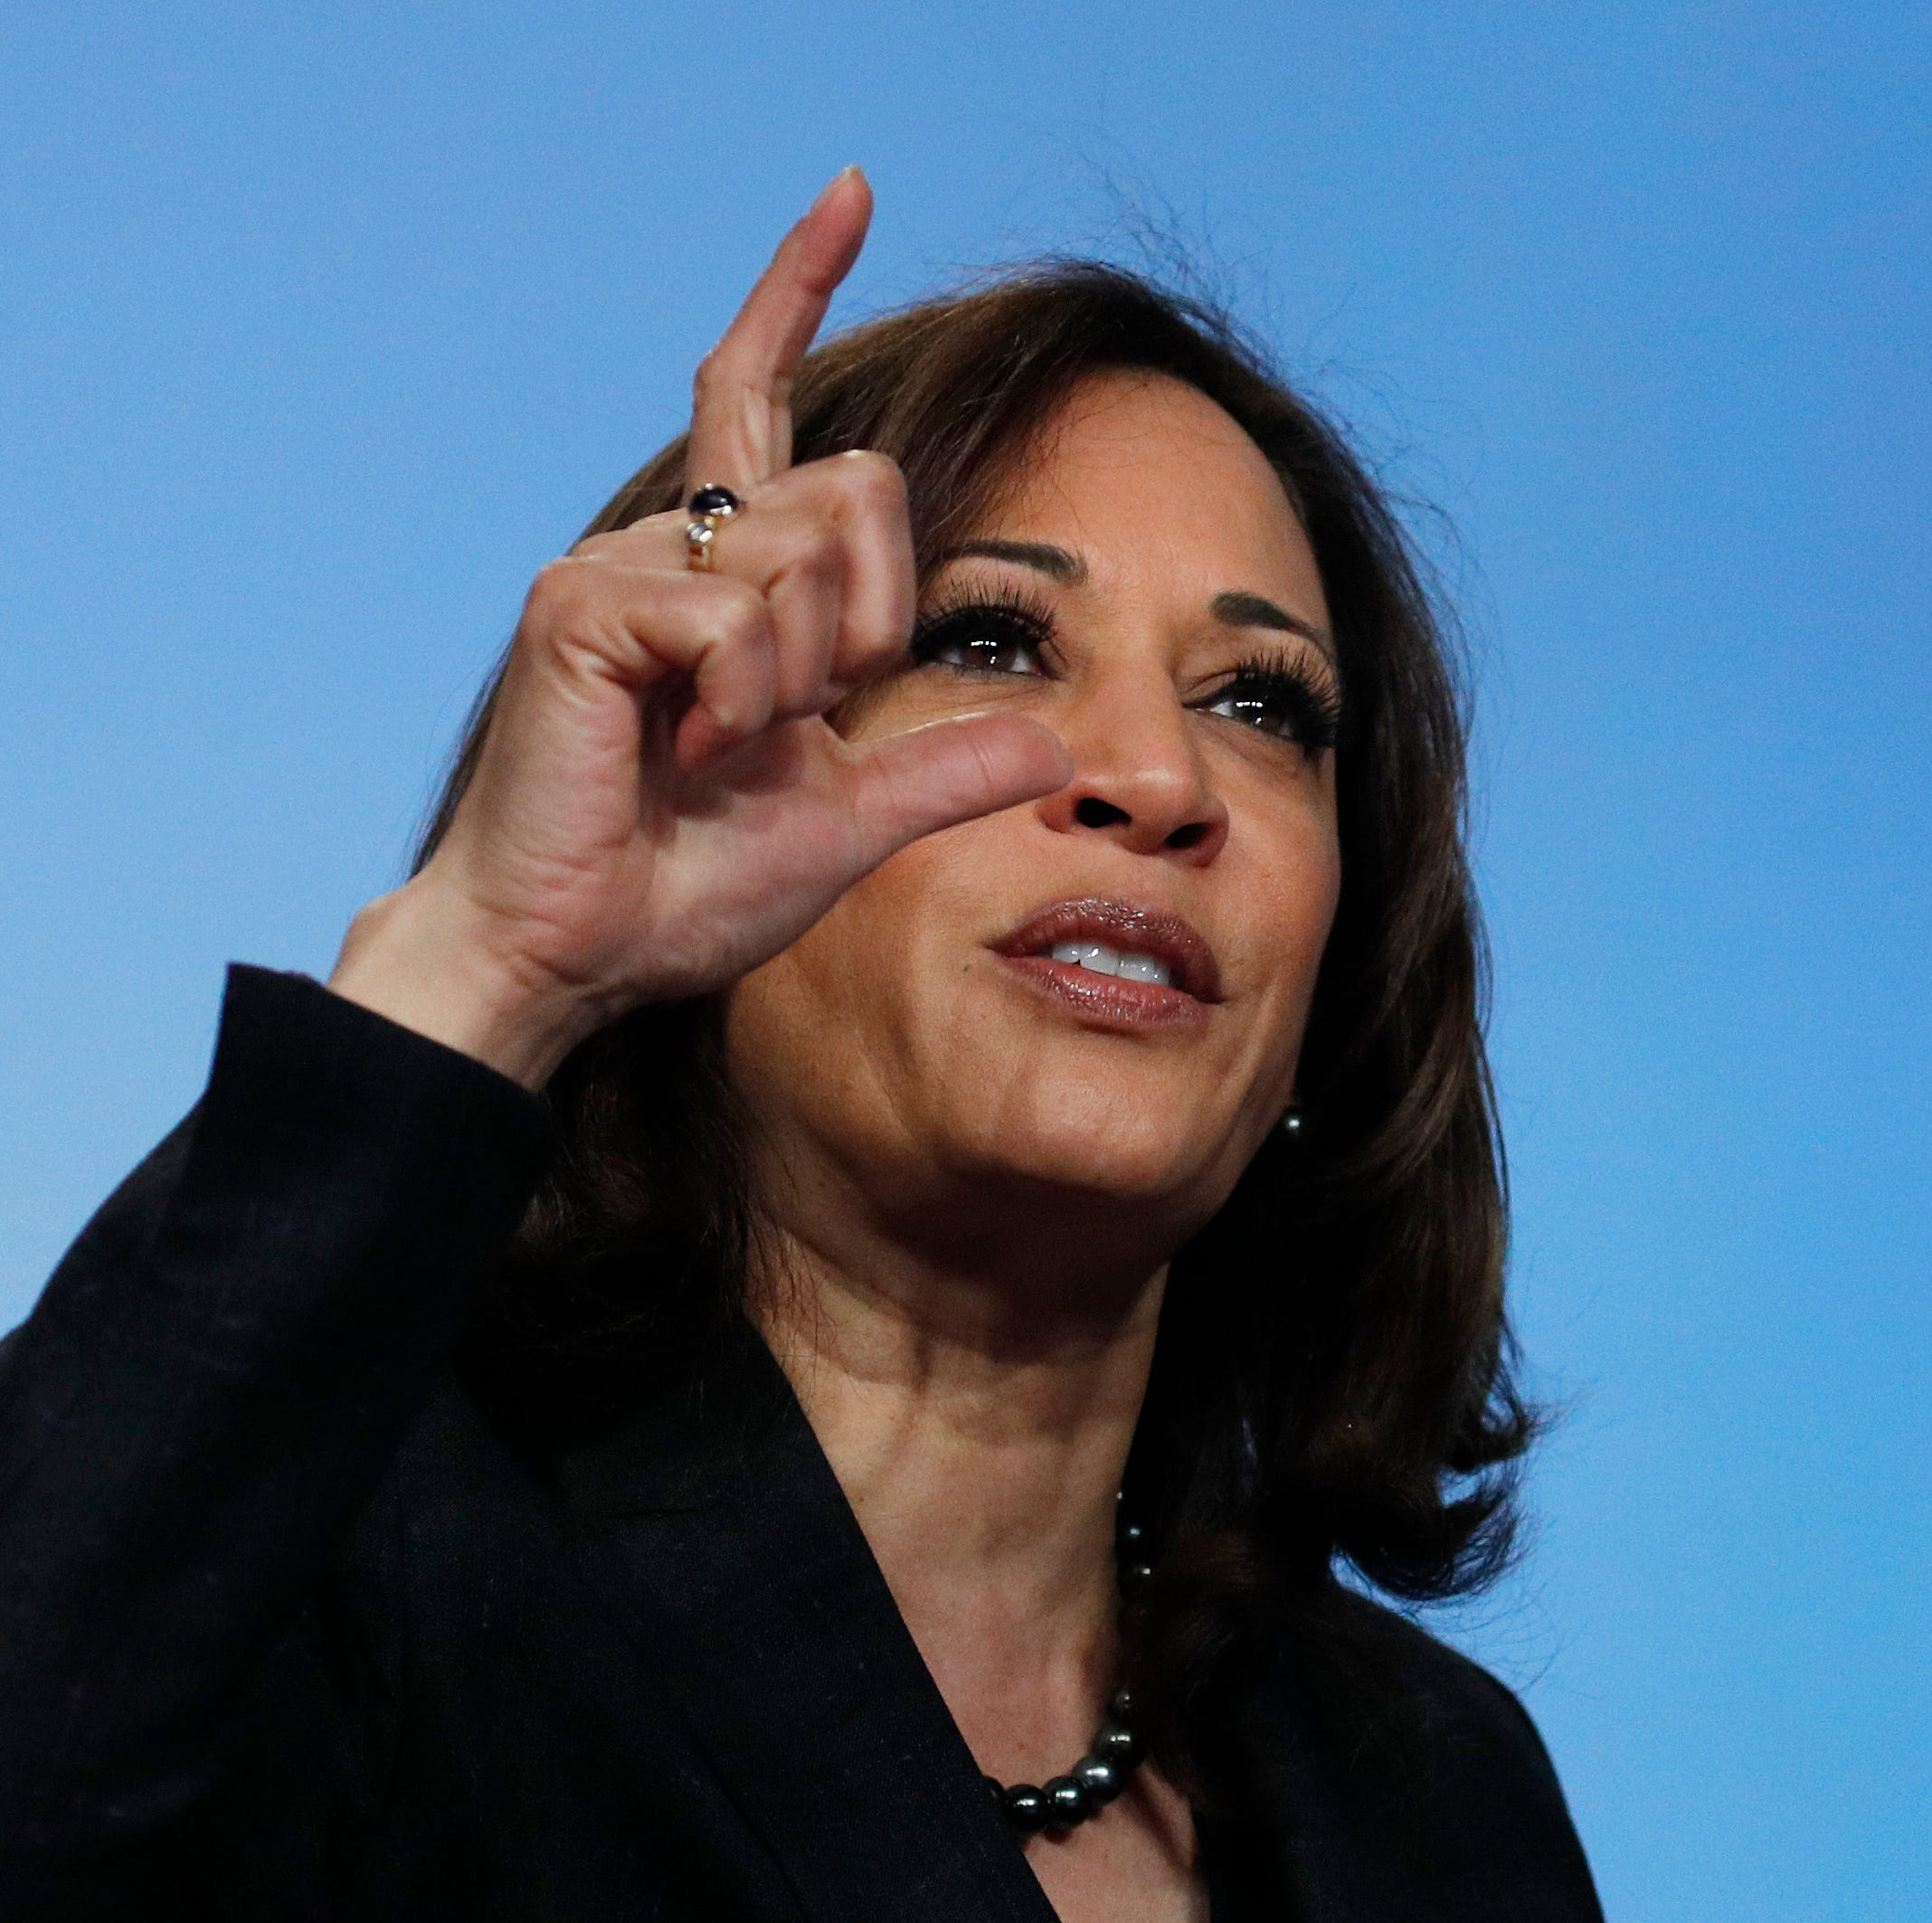 Kamala Harris as President? Stranger things have happened